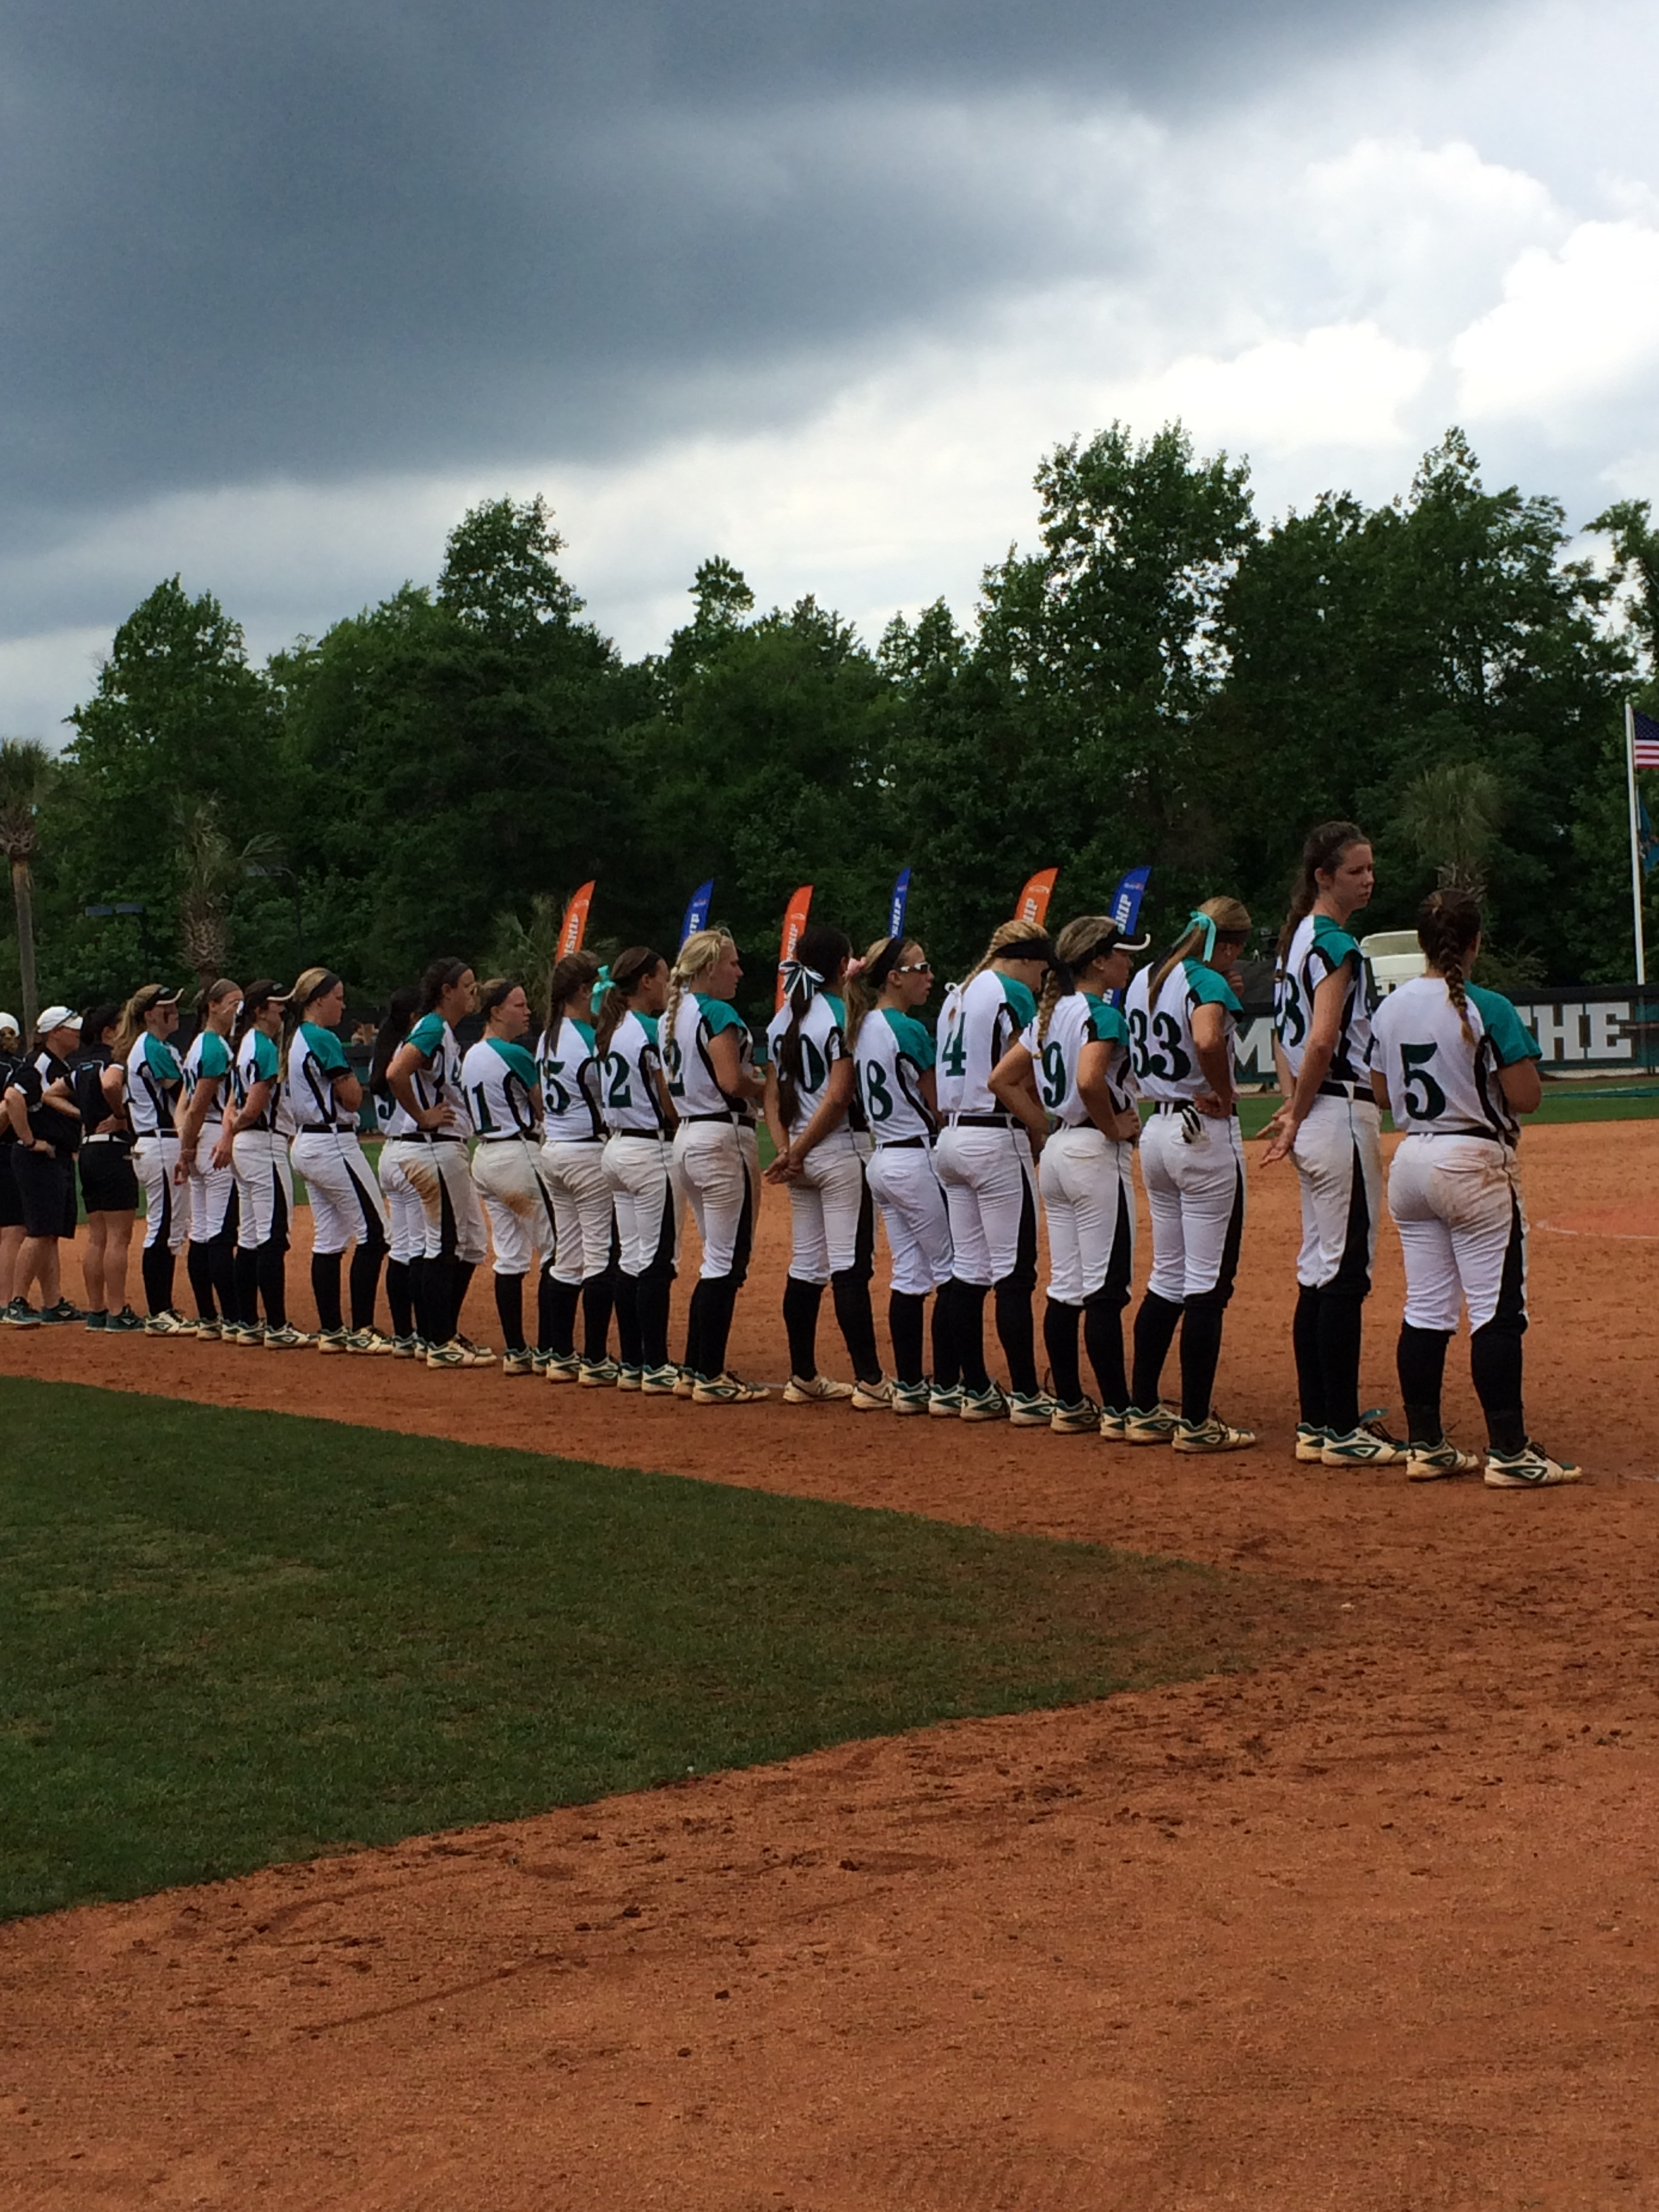 The CCU softball team stands during the awards ceremony today.